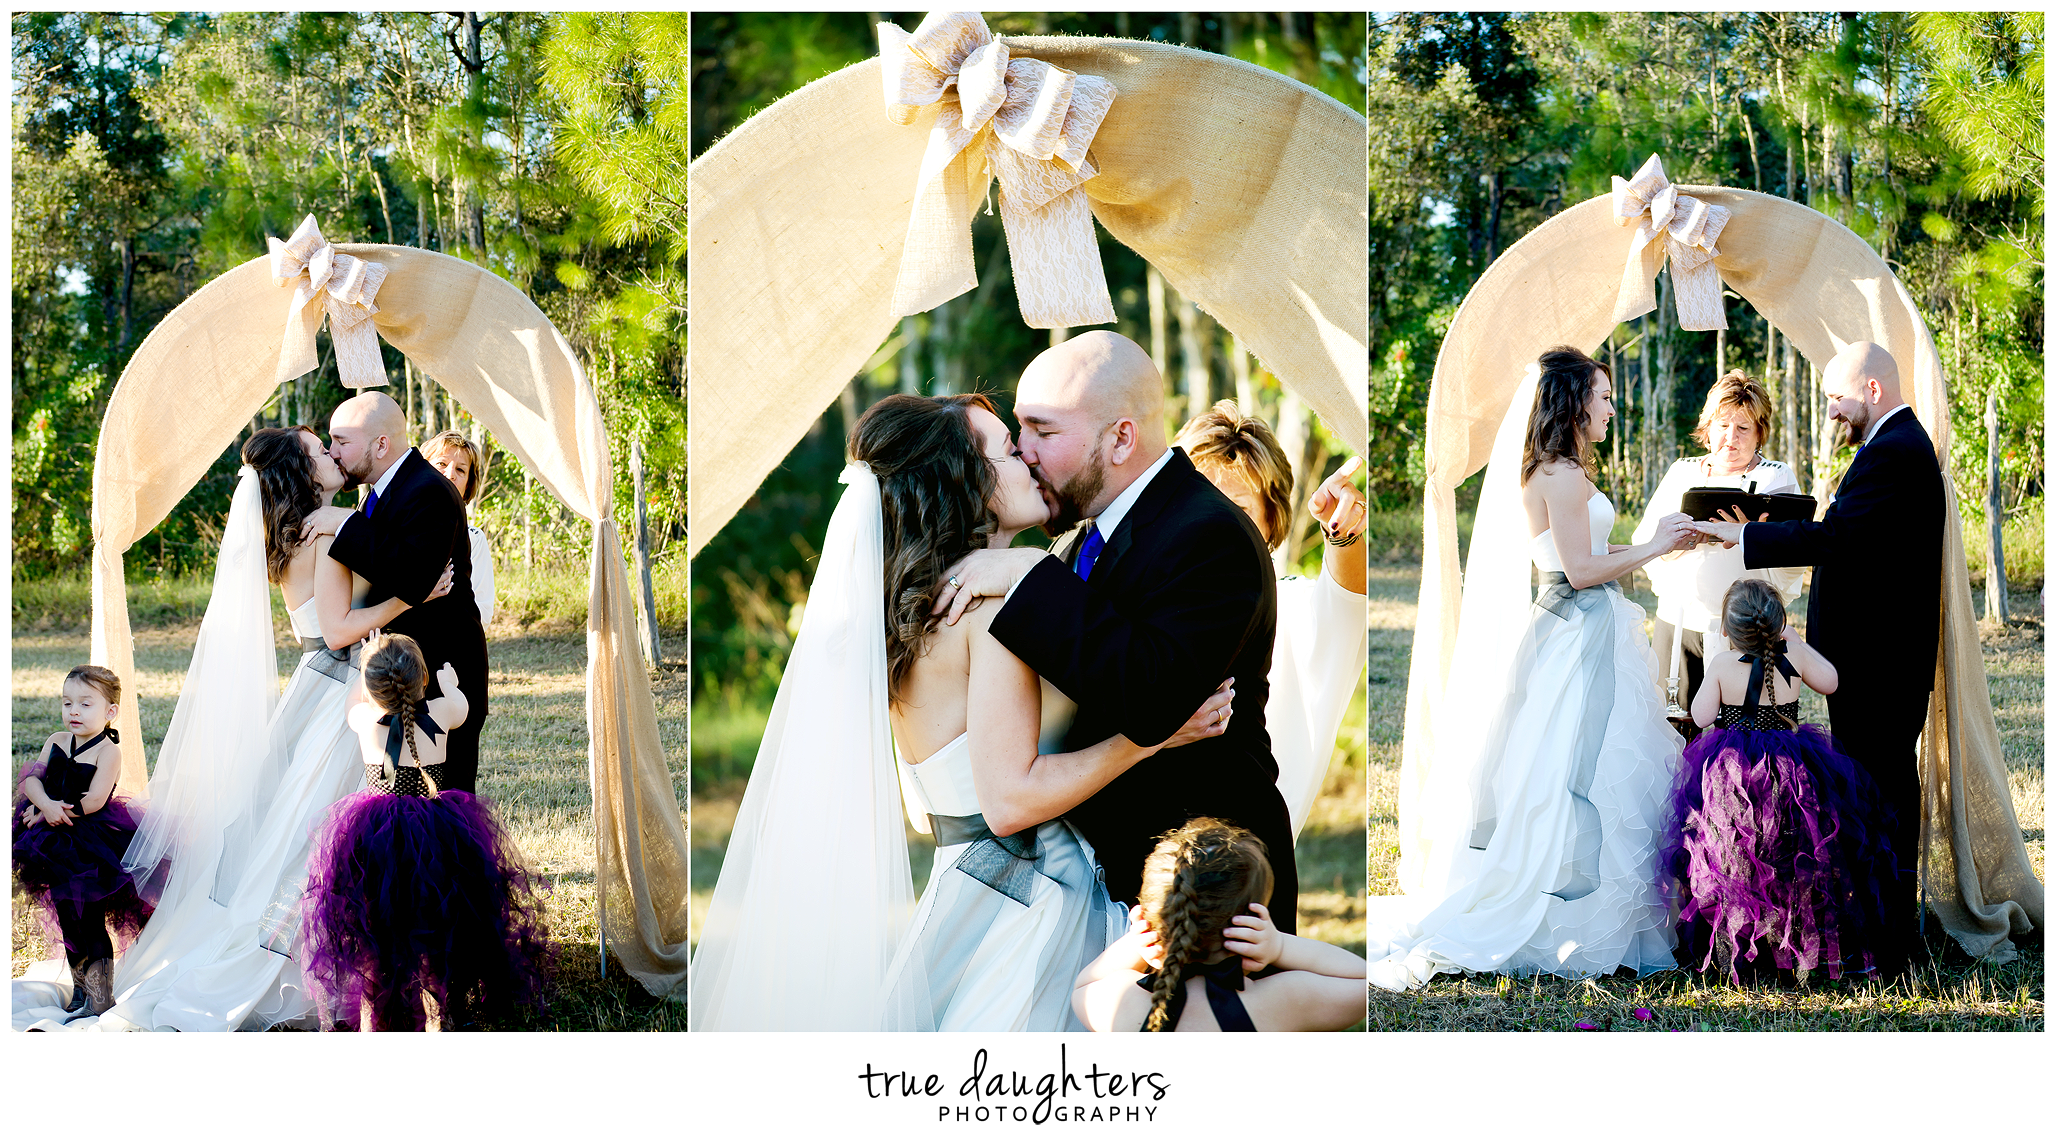 True_Daughters_Photography_Campitelli_Wedding-19.png